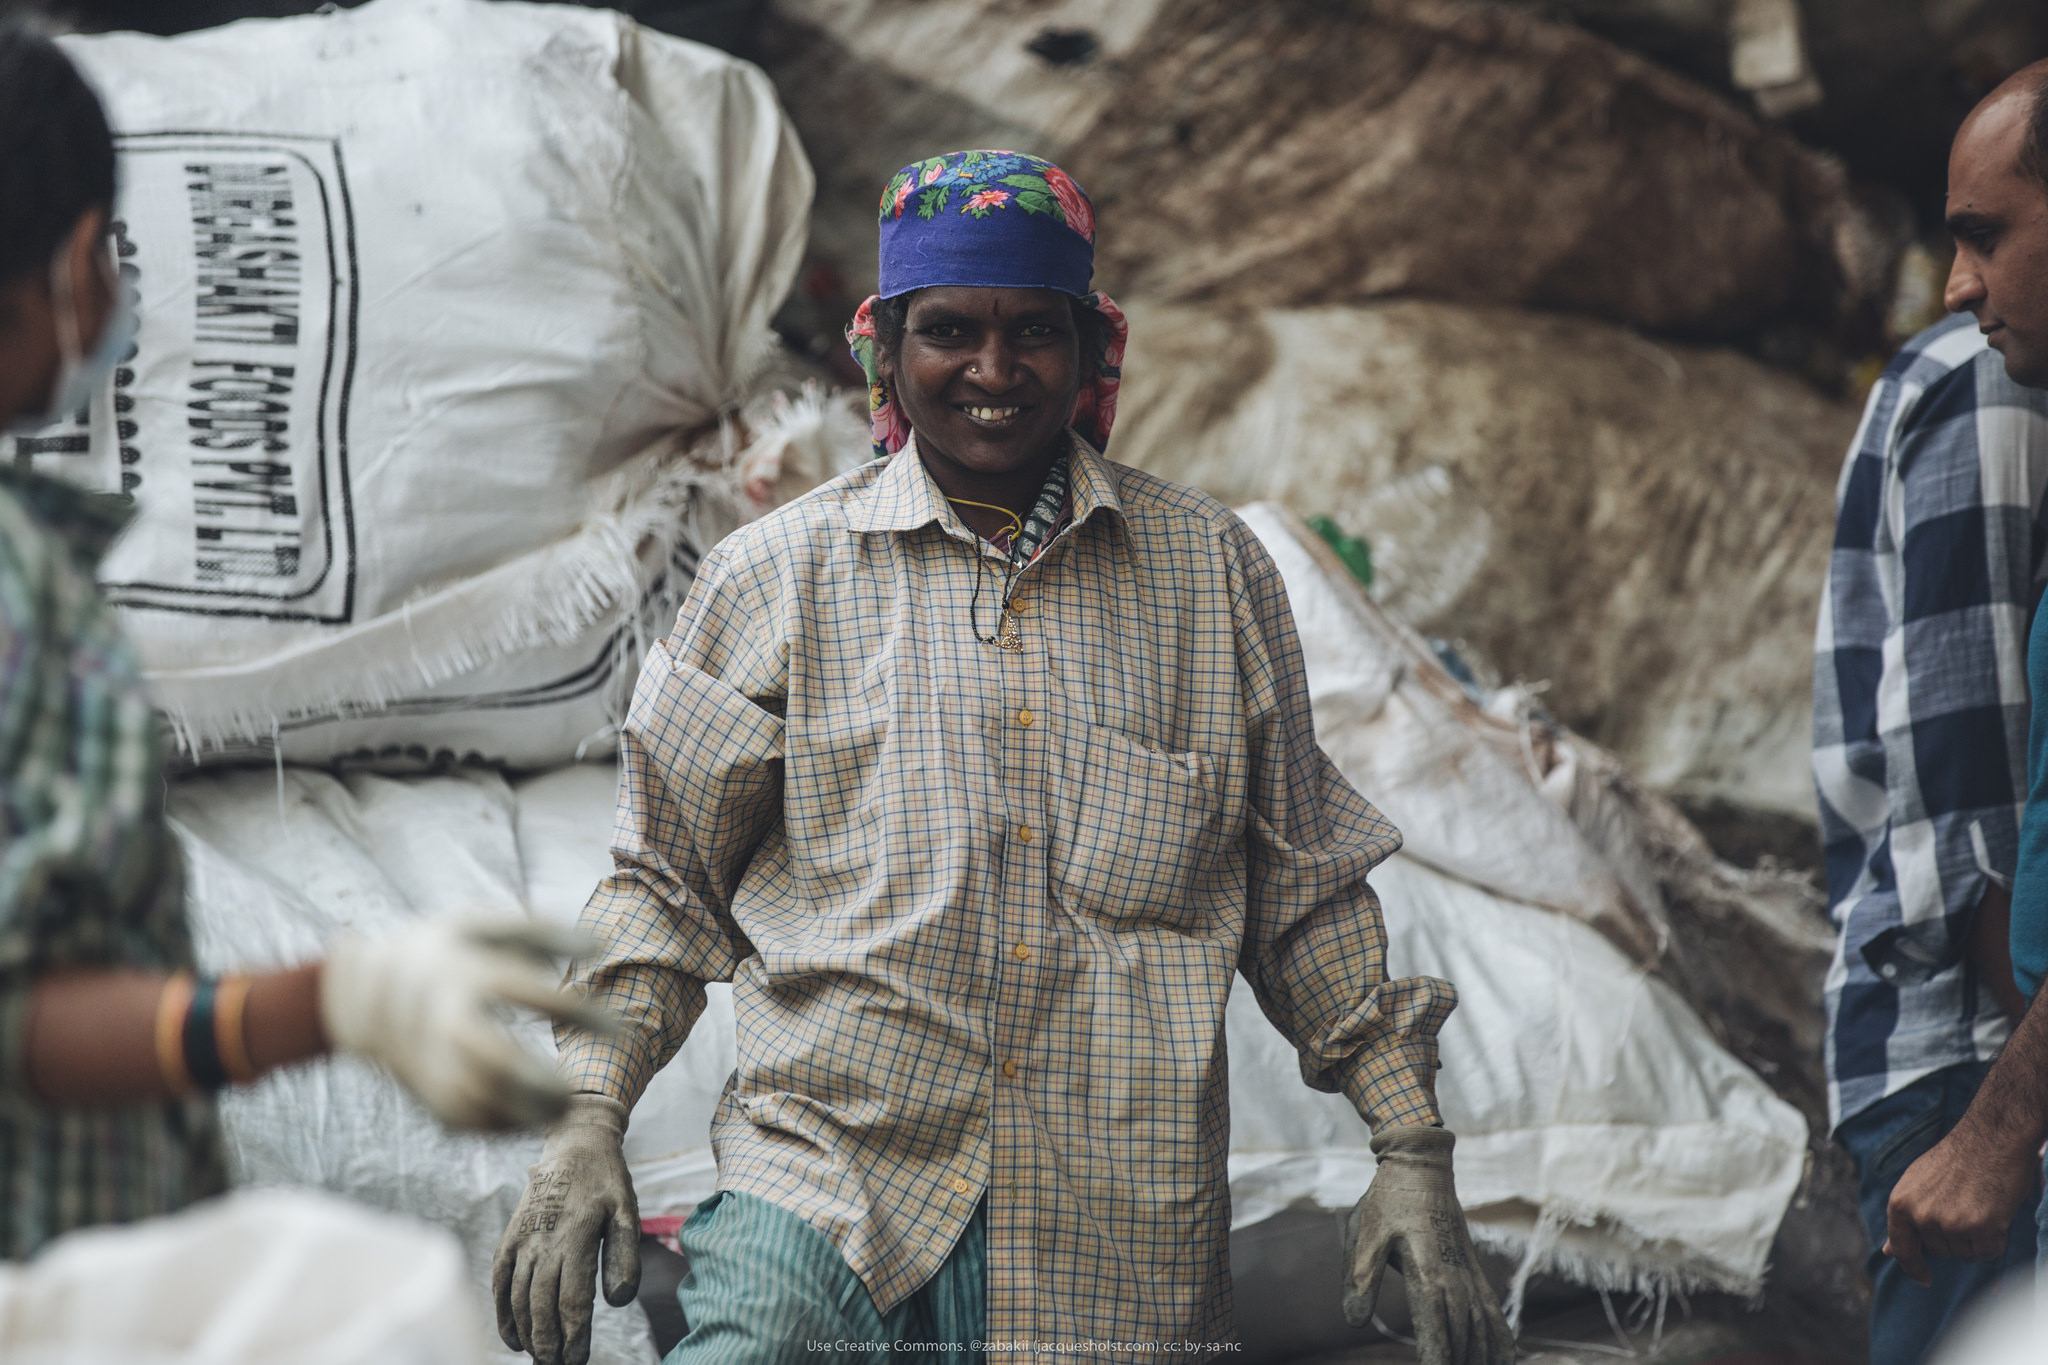 Waste Ventures India, India. Photo credit: Jaques Holst